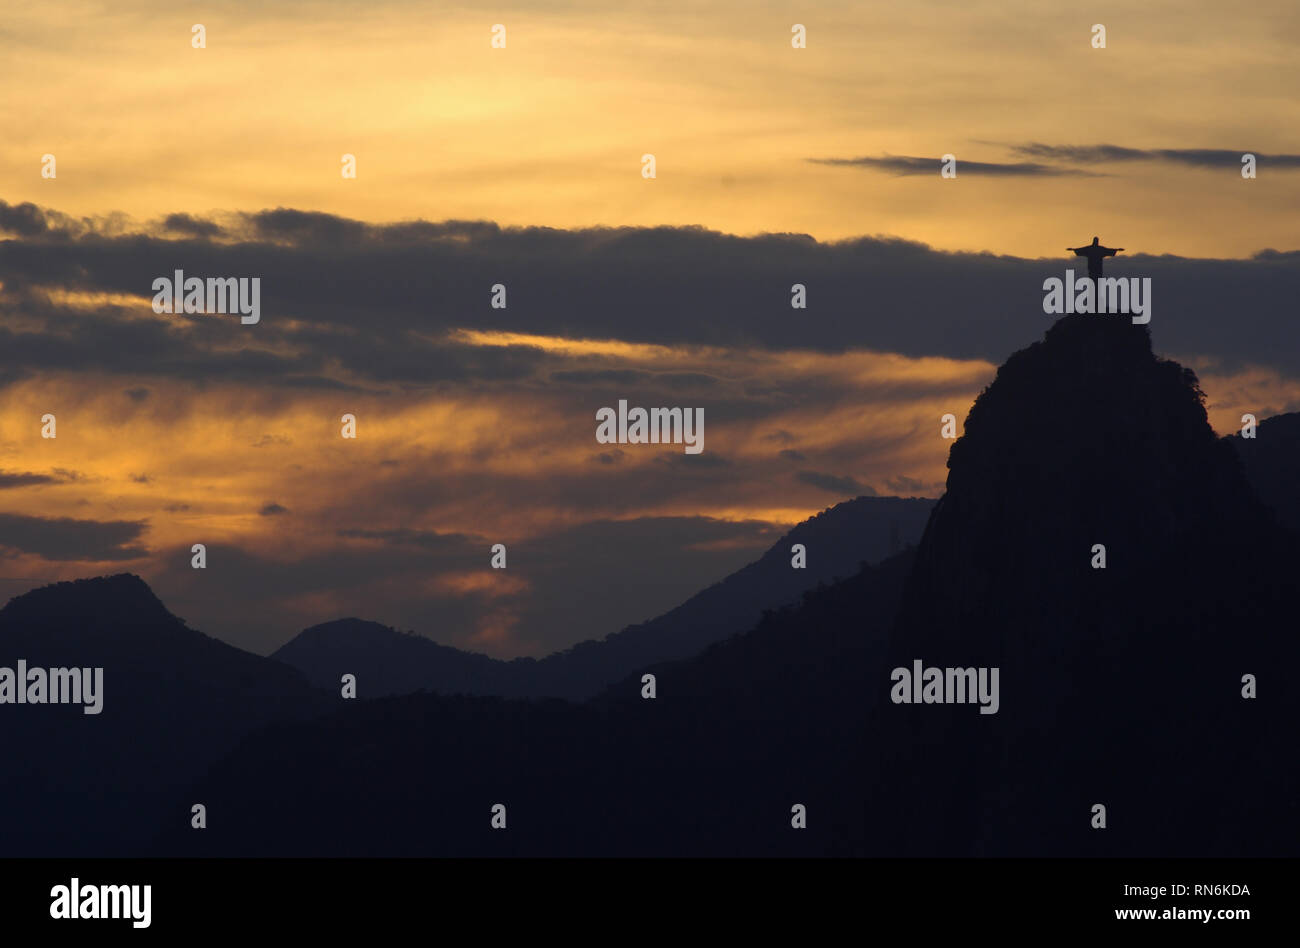 Sunset with view from sugarloaf to the Christus statue - Stock Image